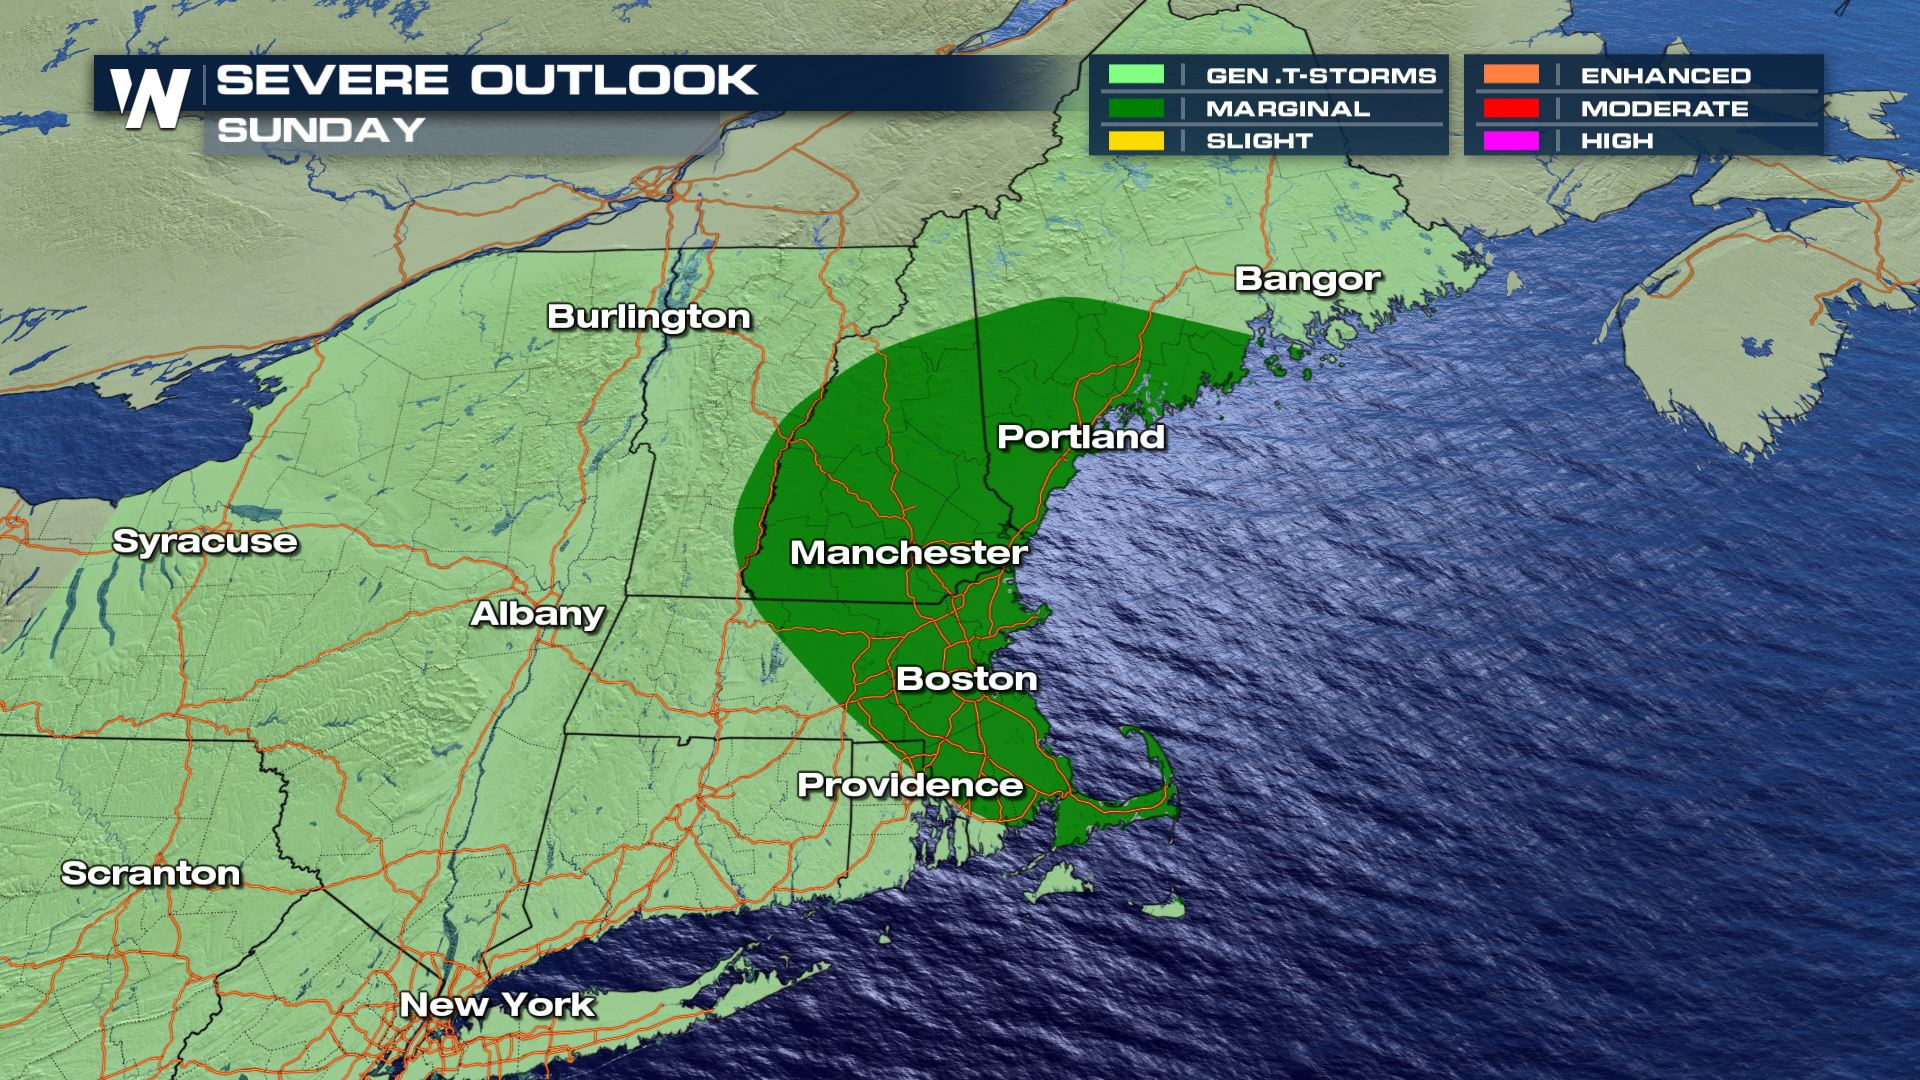 Sunday Severe Risk for Northeast